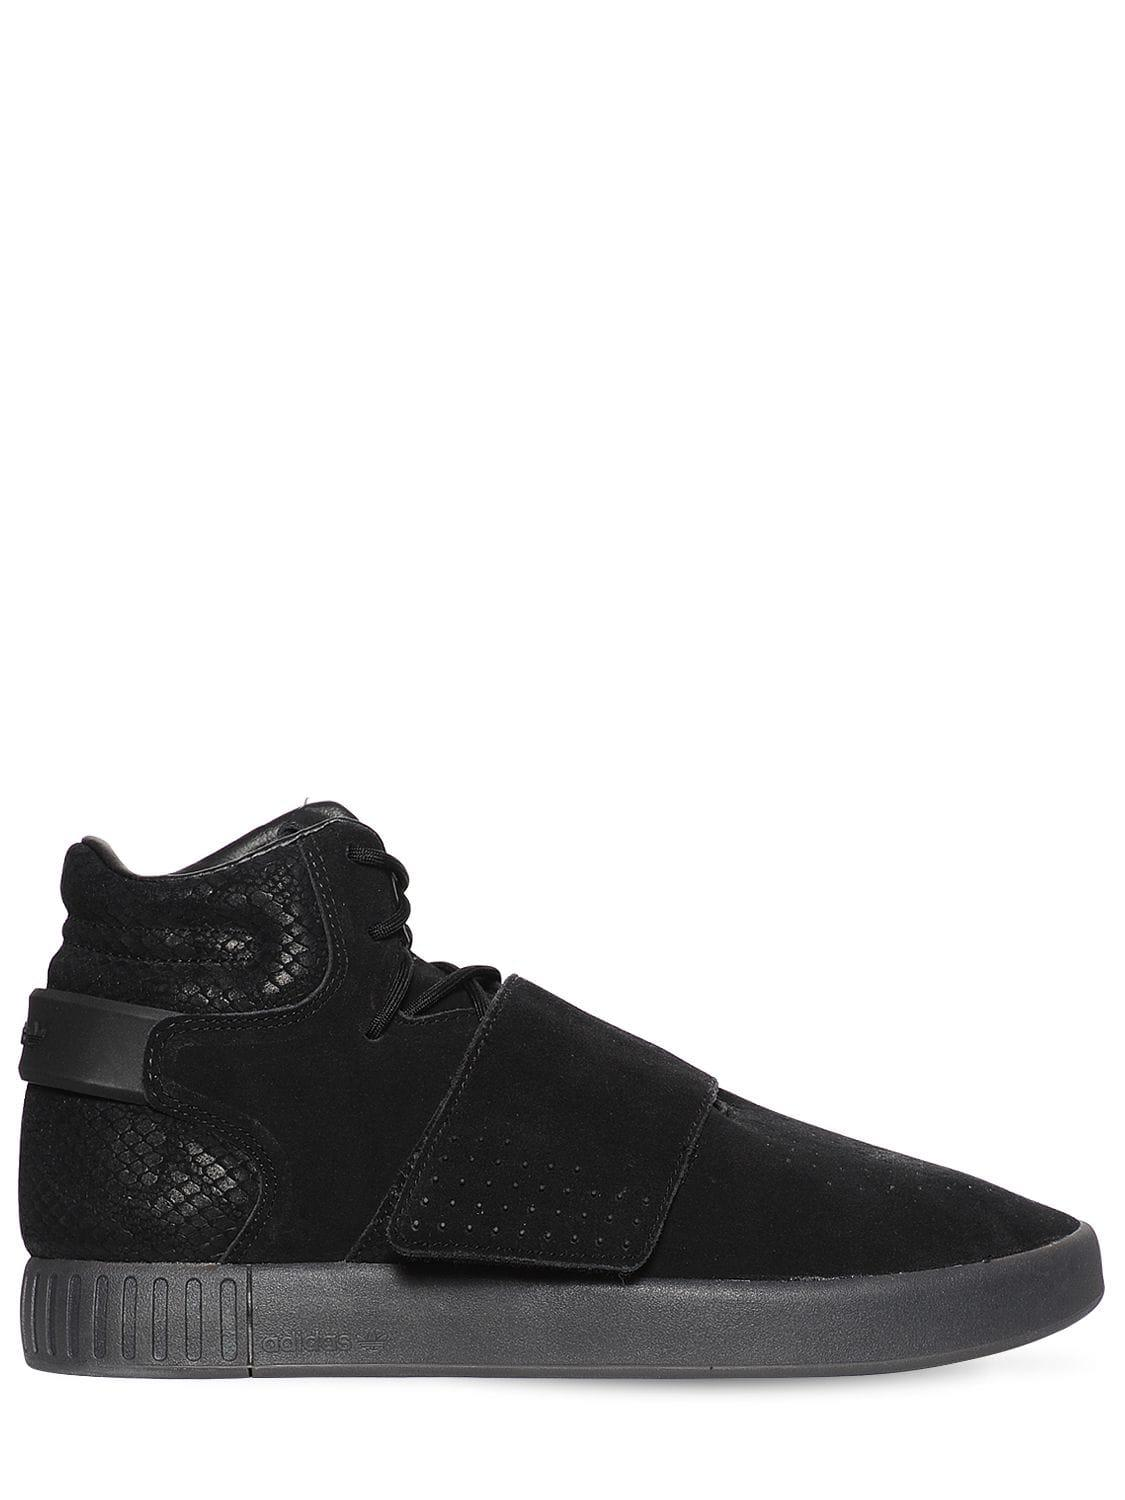 adidas Originals Tubular Invader Suede High